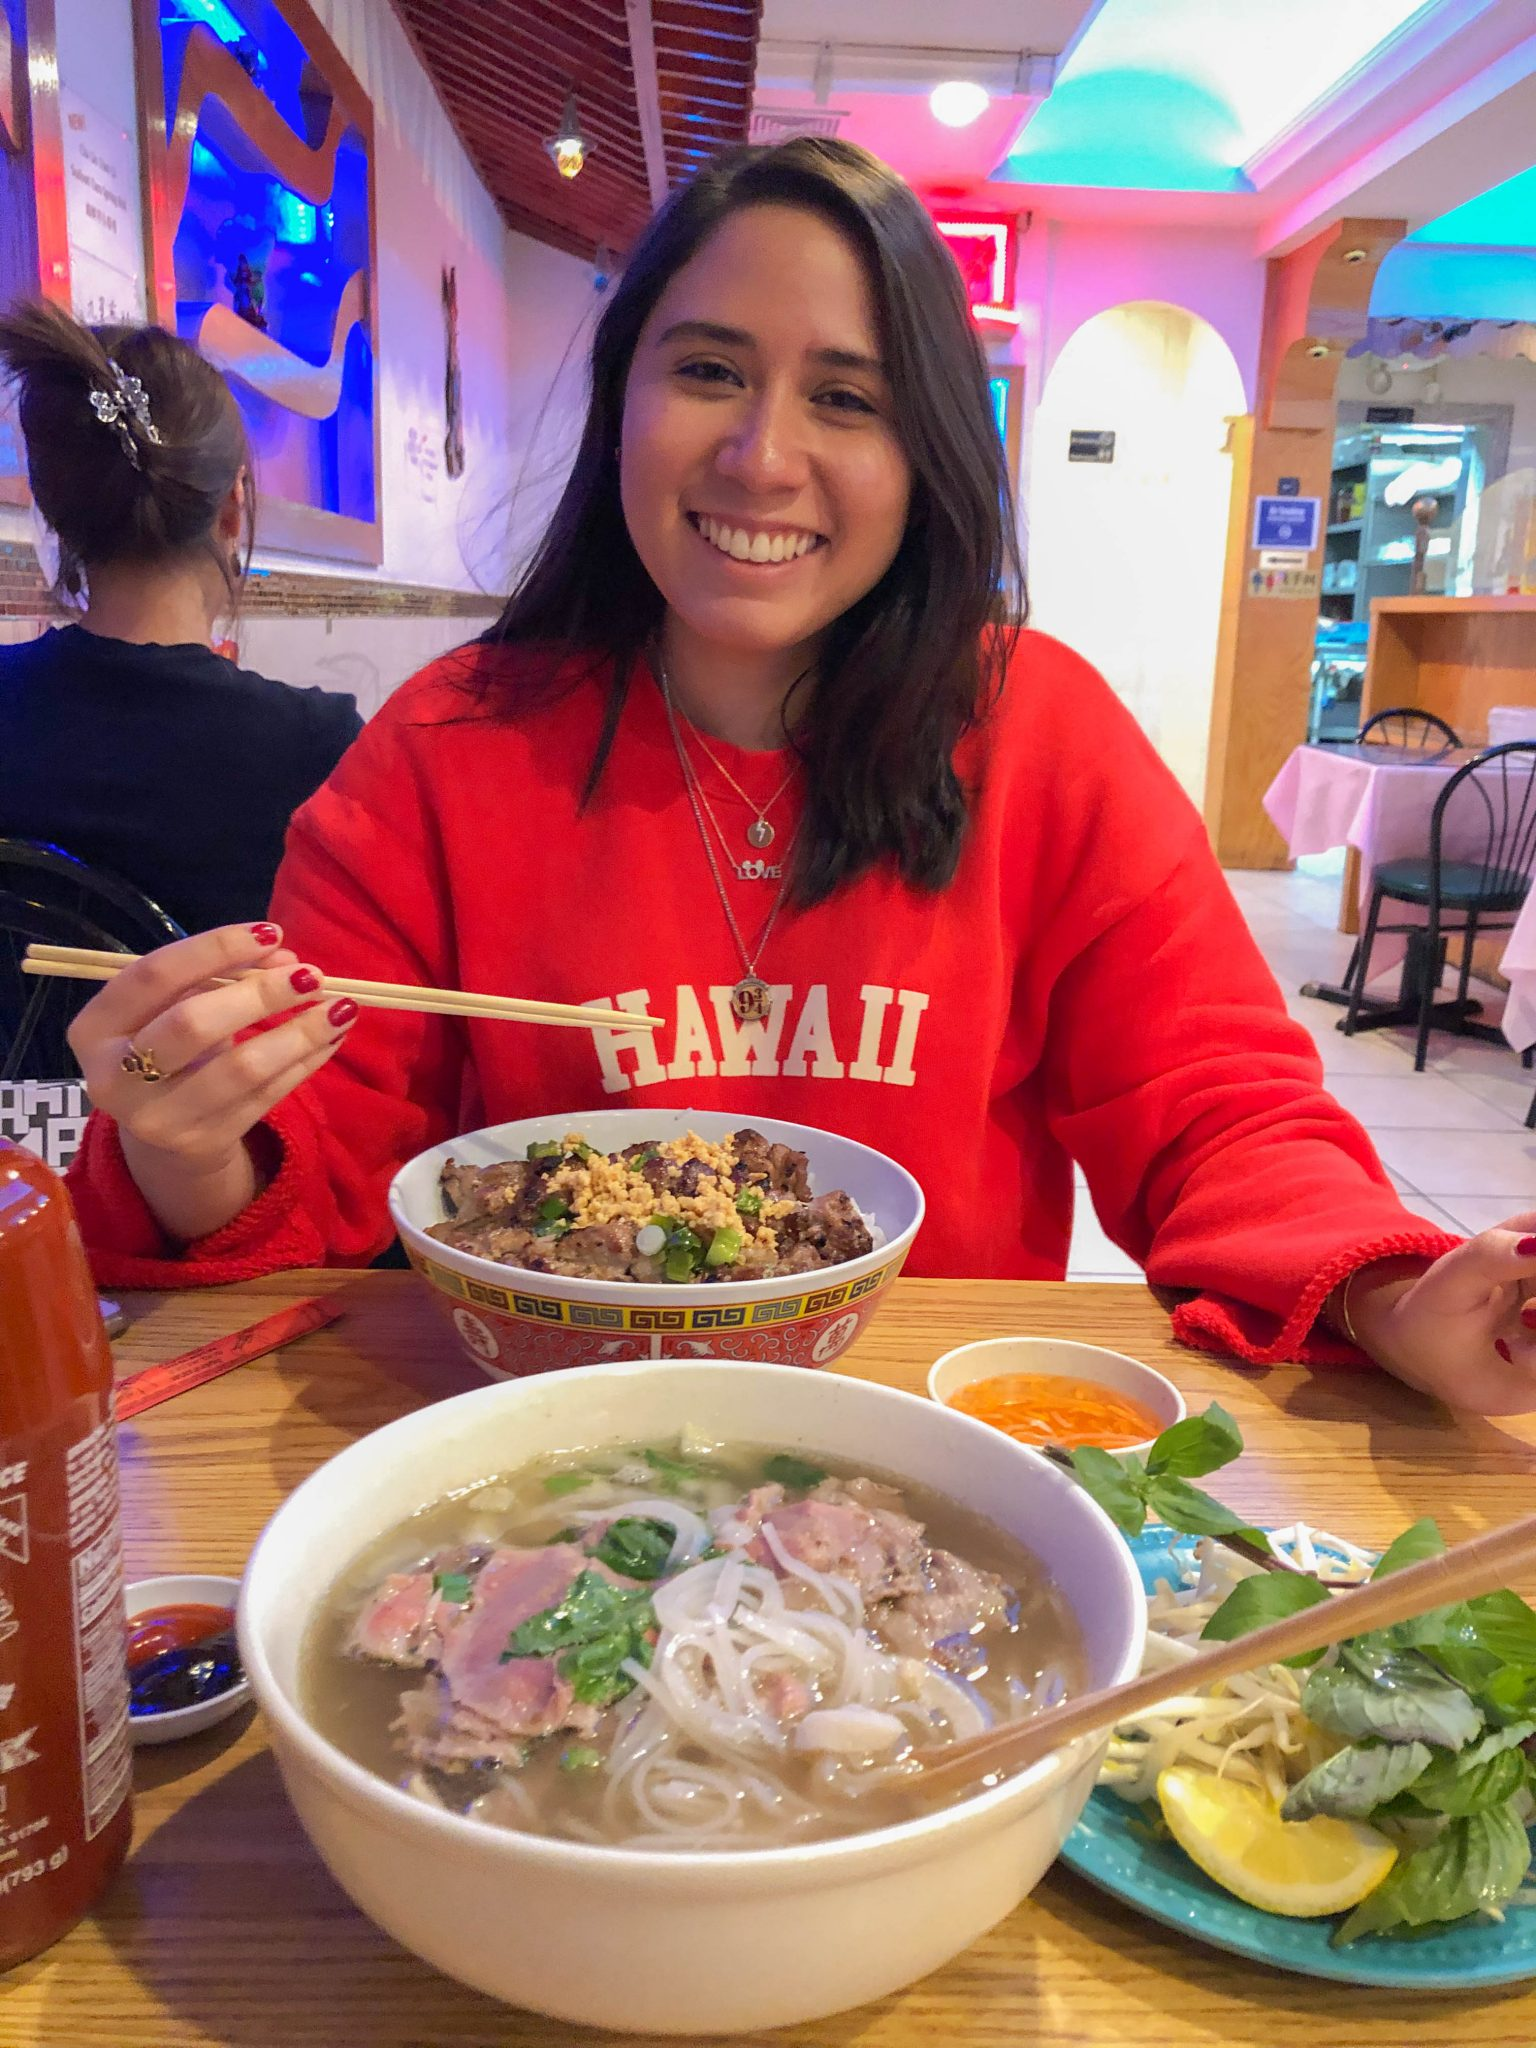 Friday Favorites :: Vietnamese Vacation 2020 by popular New York City lifestyle blog, Live Laugh Linda: image of a woman eating Vietnamese food.